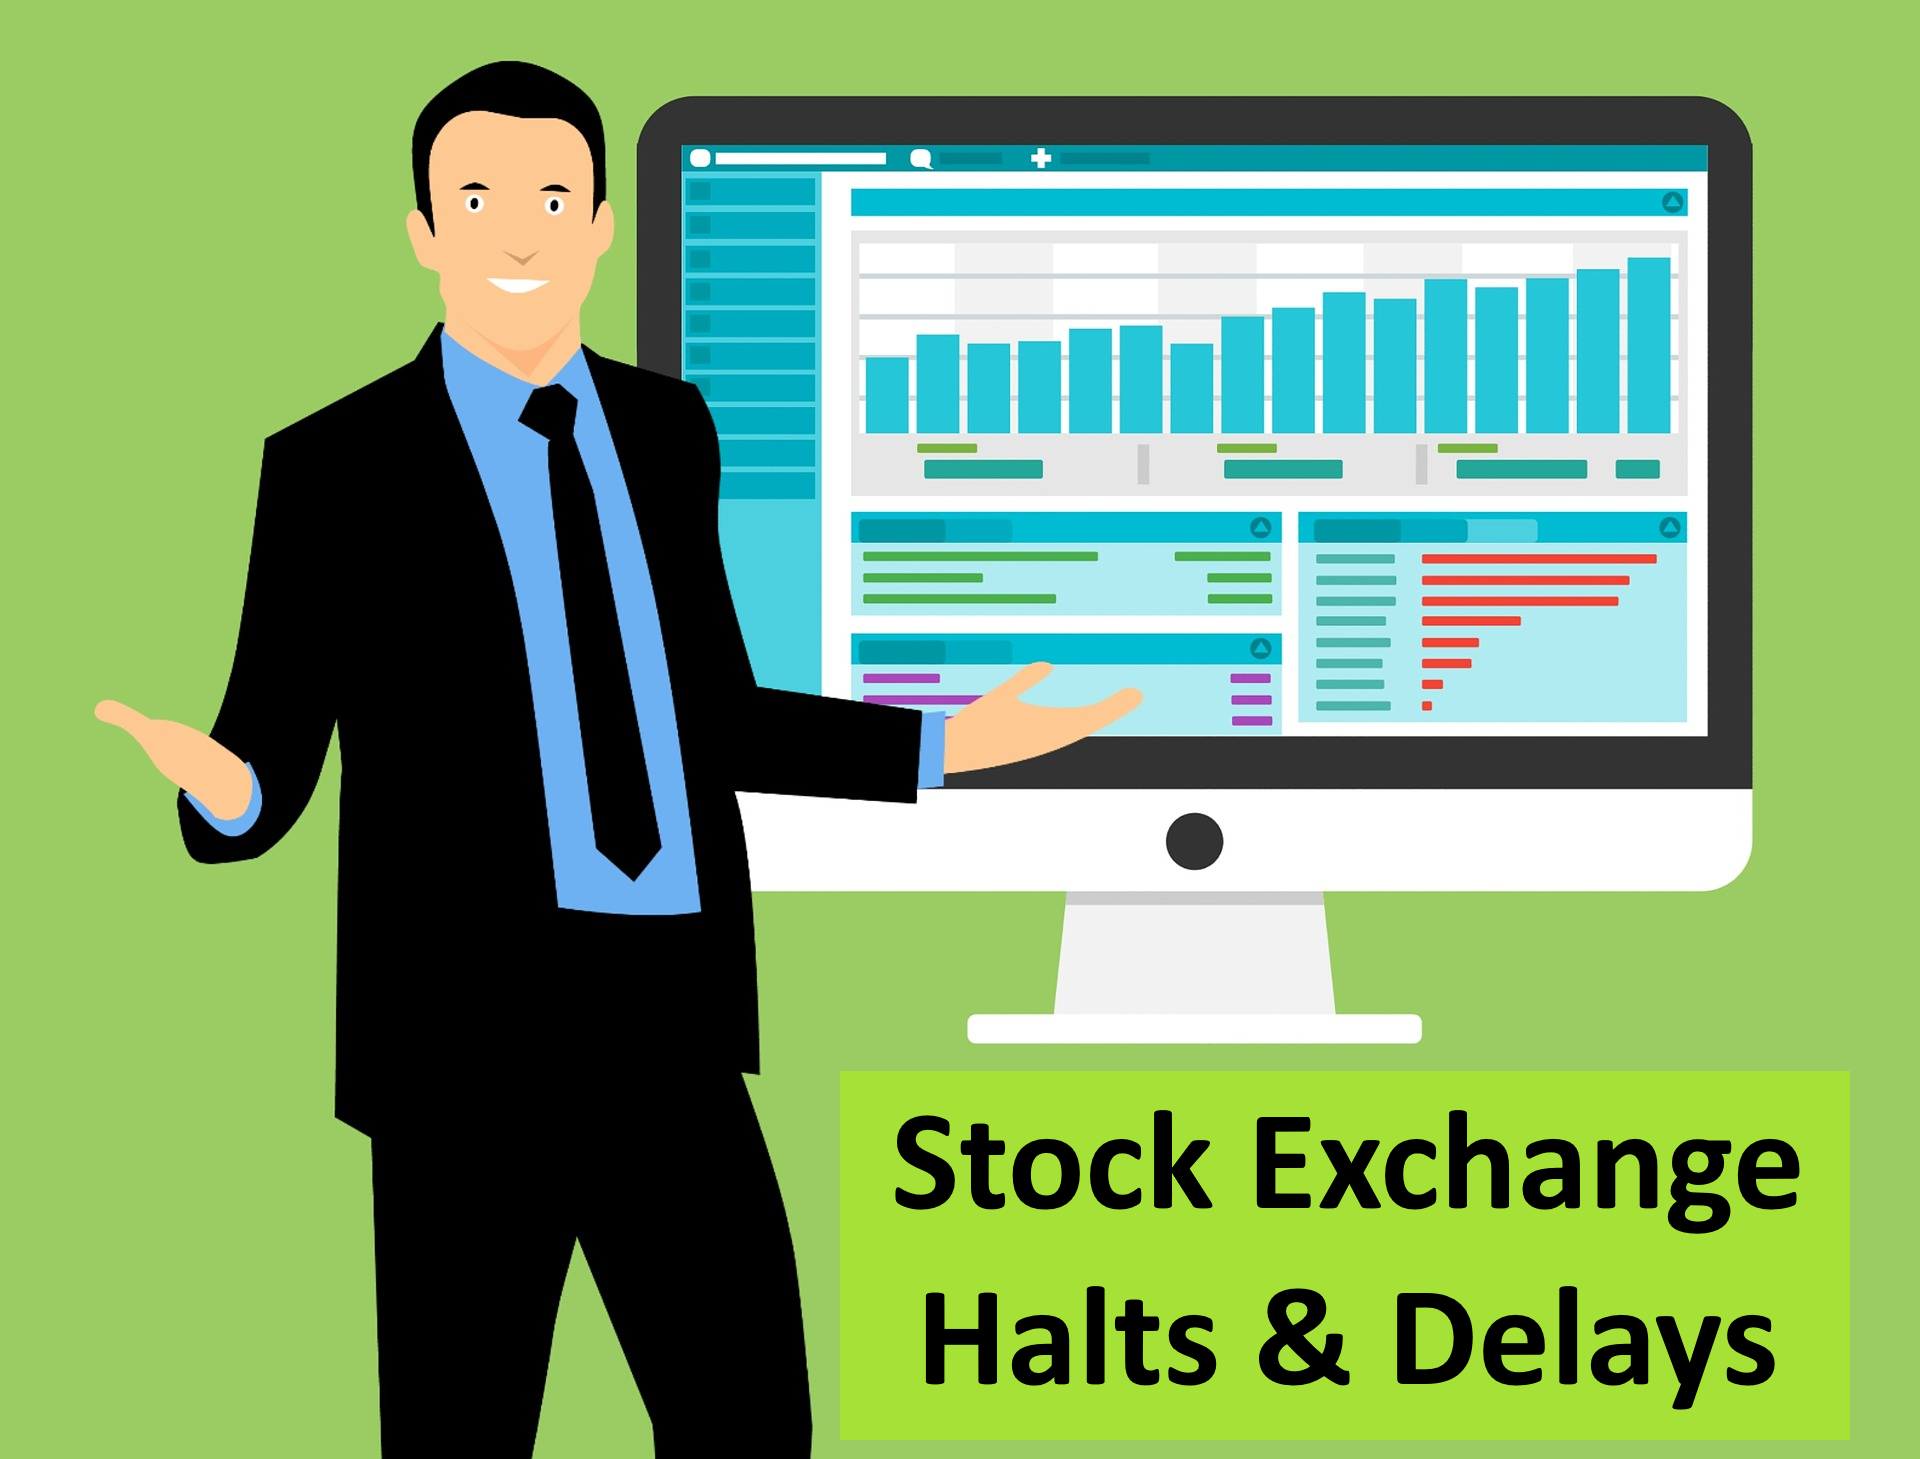 Image of stock trader in front of trading terminal with halts and delays sign.